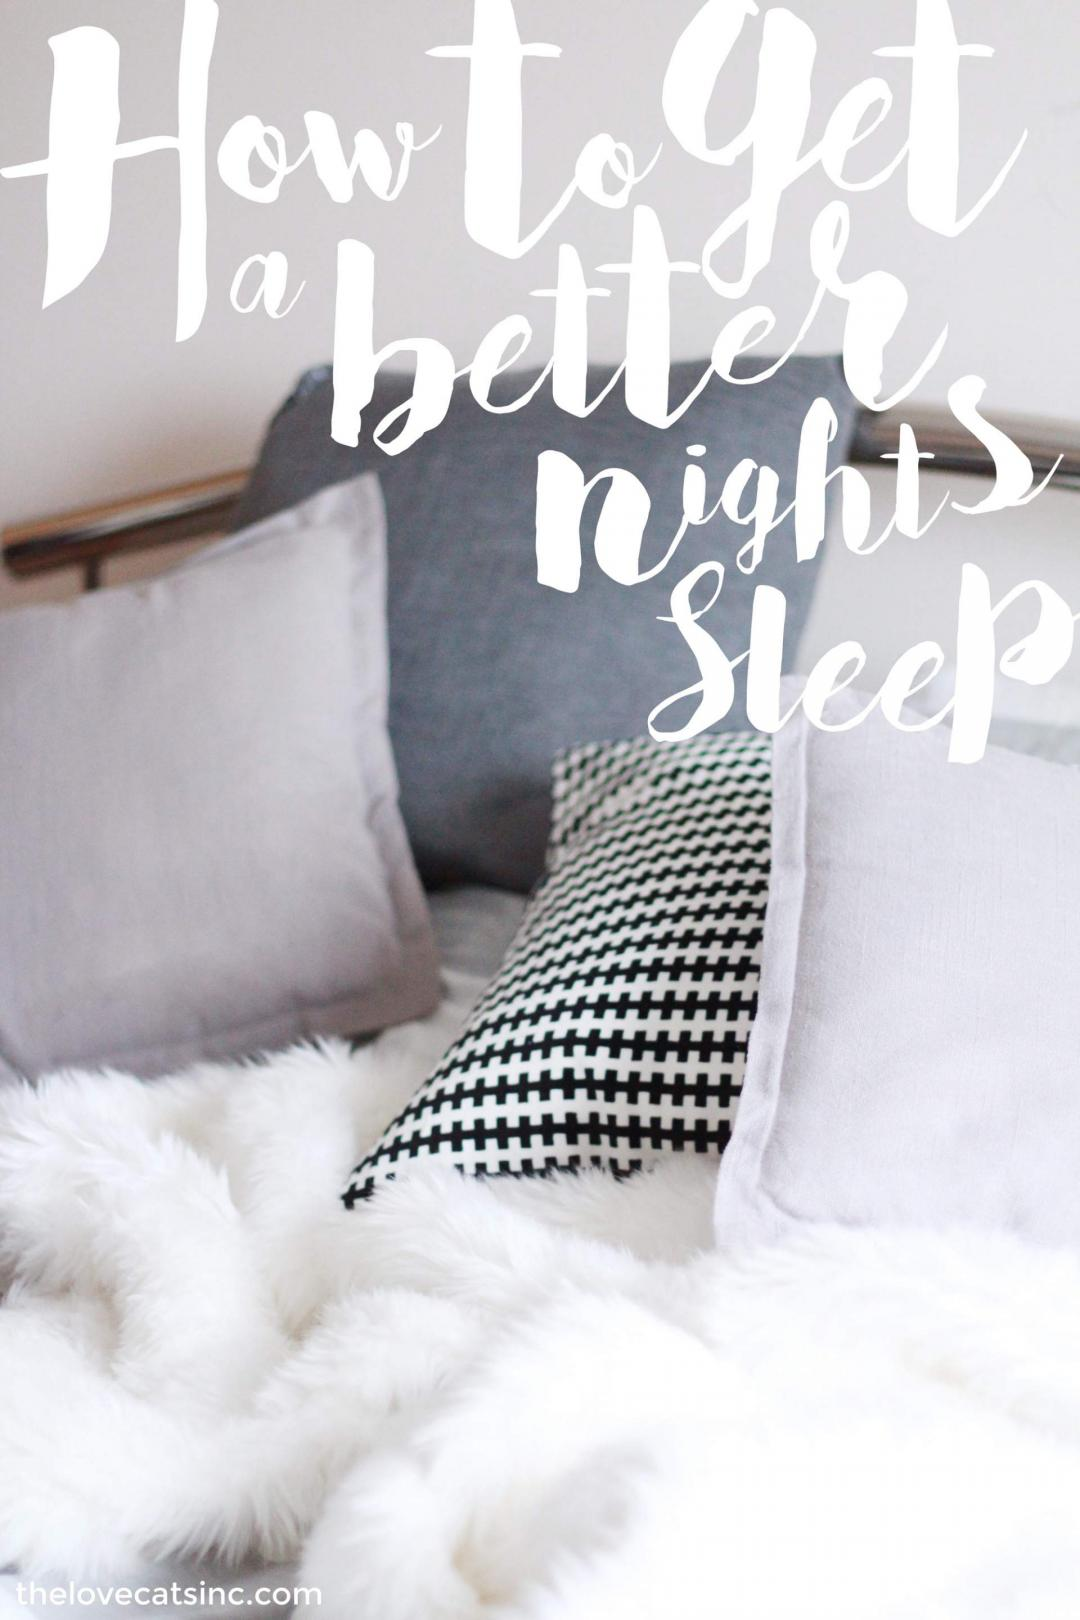 how-to-get-a-better-nights-sleep-tips-and-tricks-how-to-drift-off-sleep-better